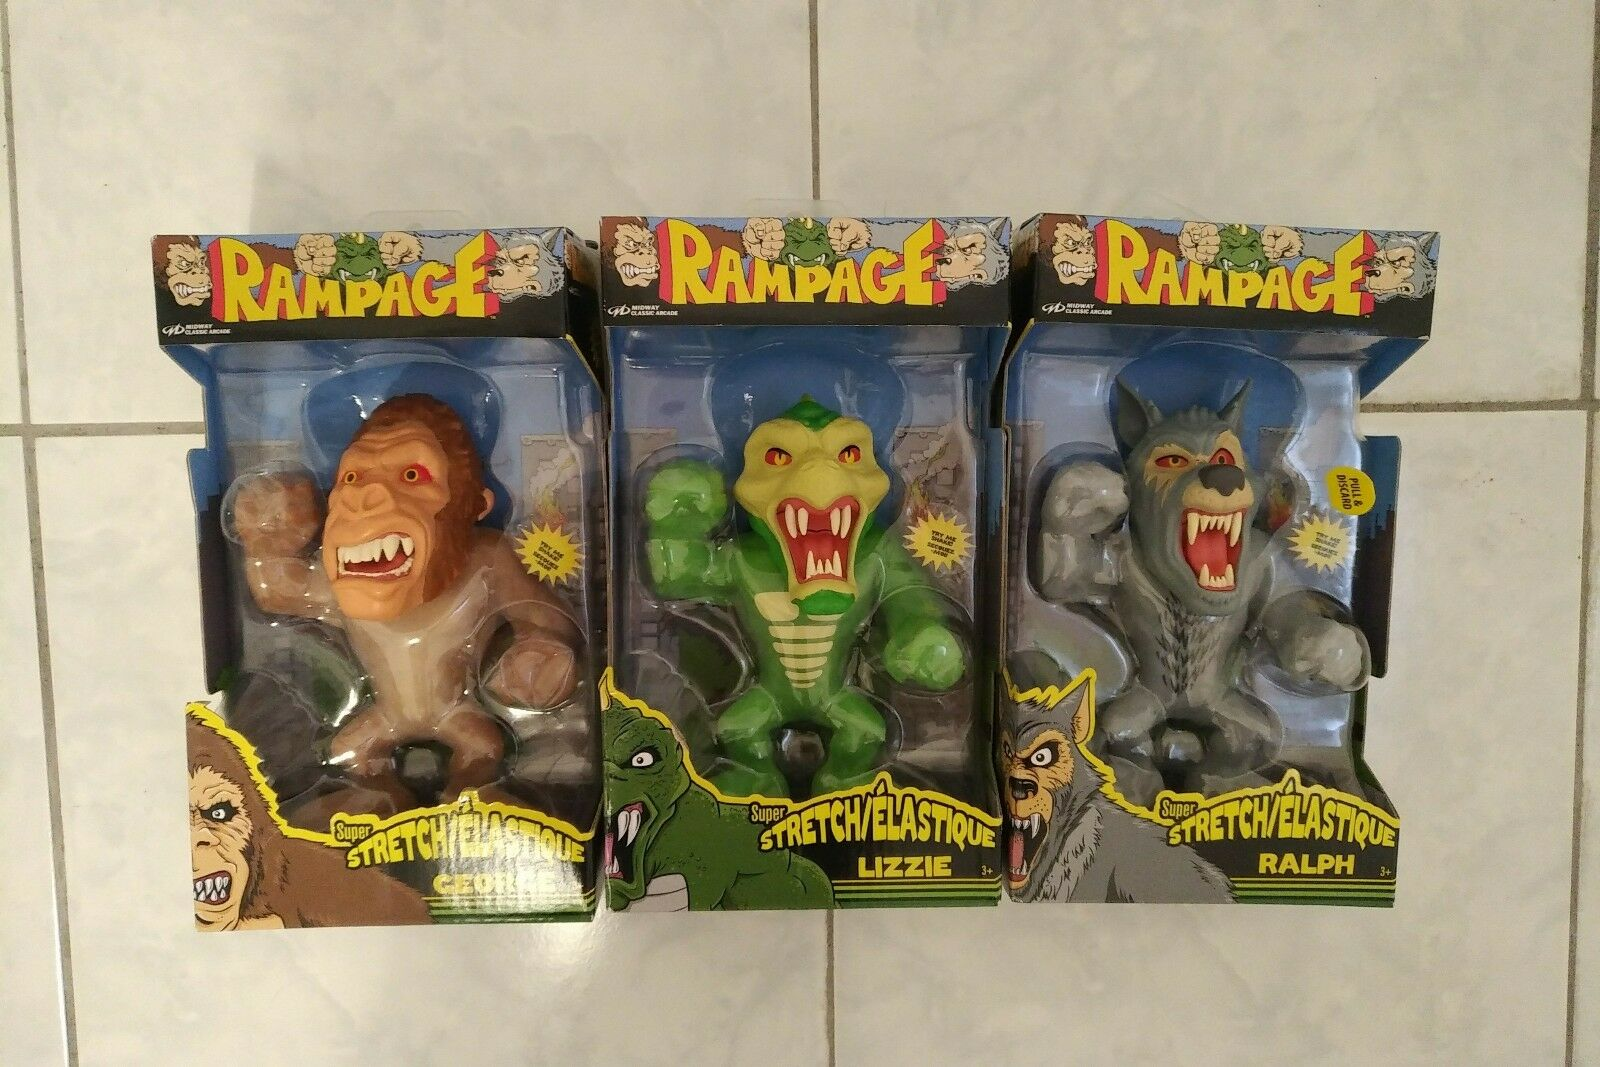 RAMPAGE Midway Arcade Complete Set Of 3 Walmart Exclusive Super Stretch Figures